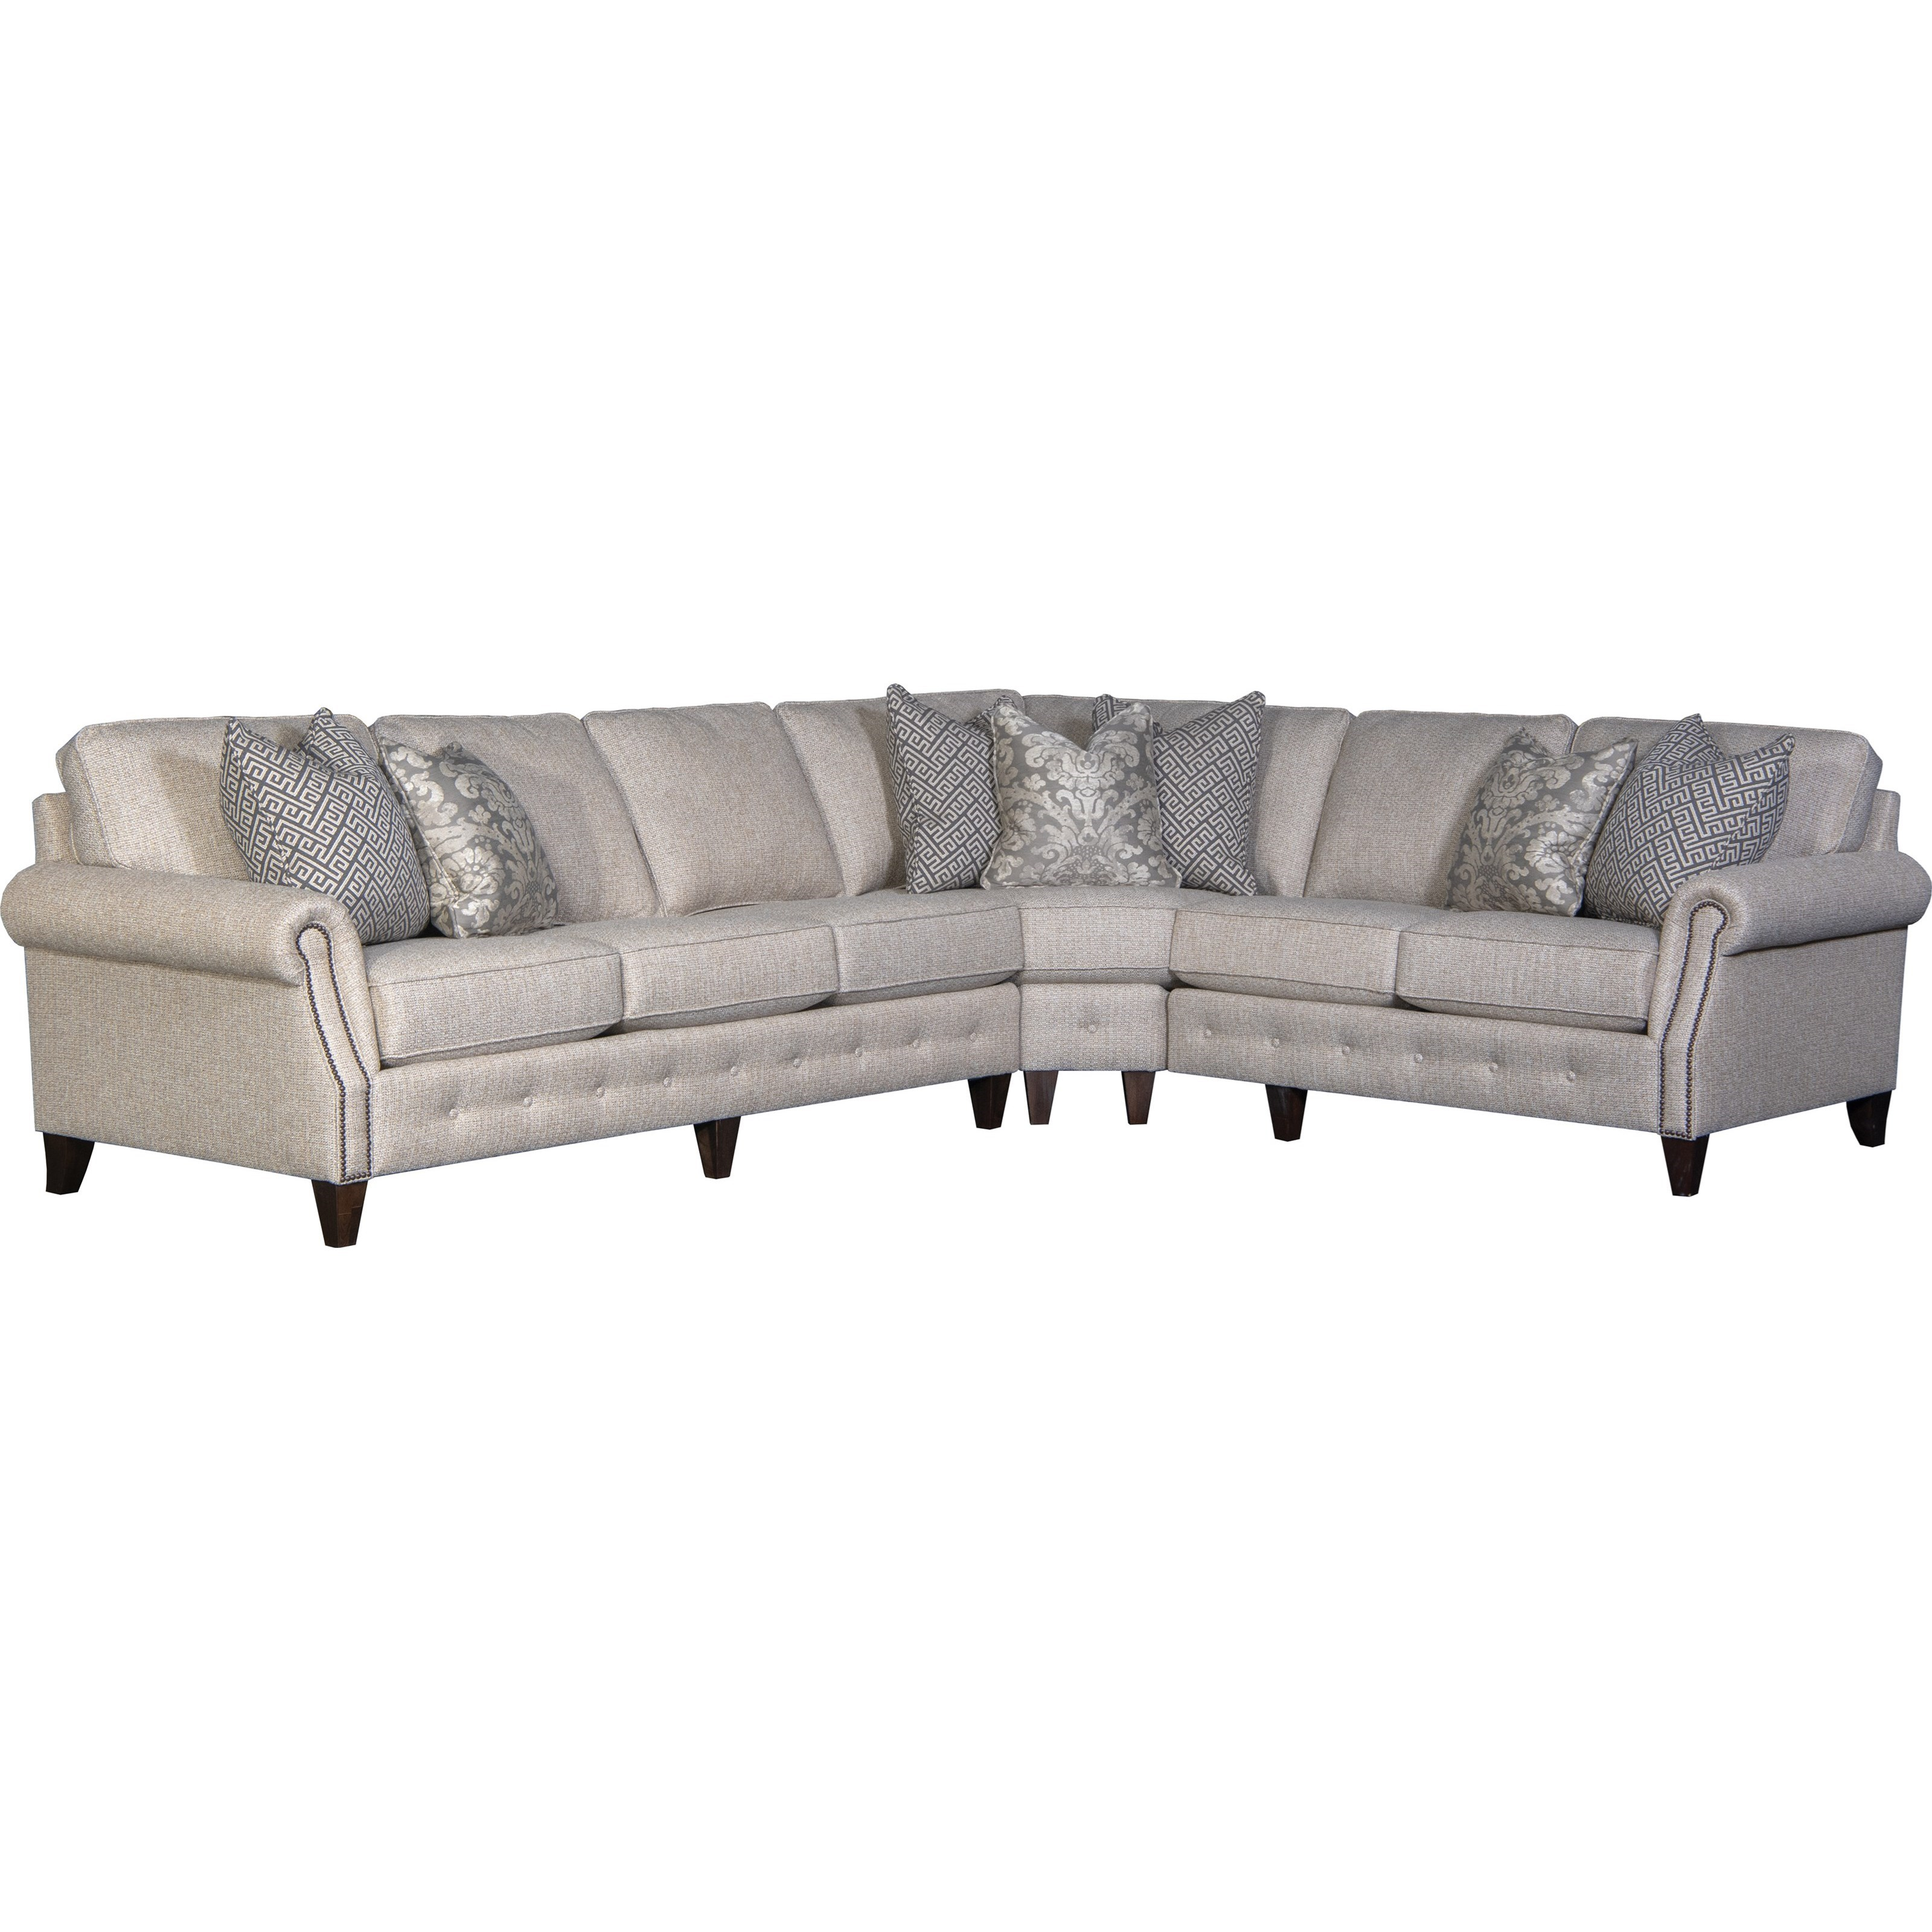 4040 5-Seat Sectional Sofa w/ LAF Sofa by Mayo at Wilcox Furniture